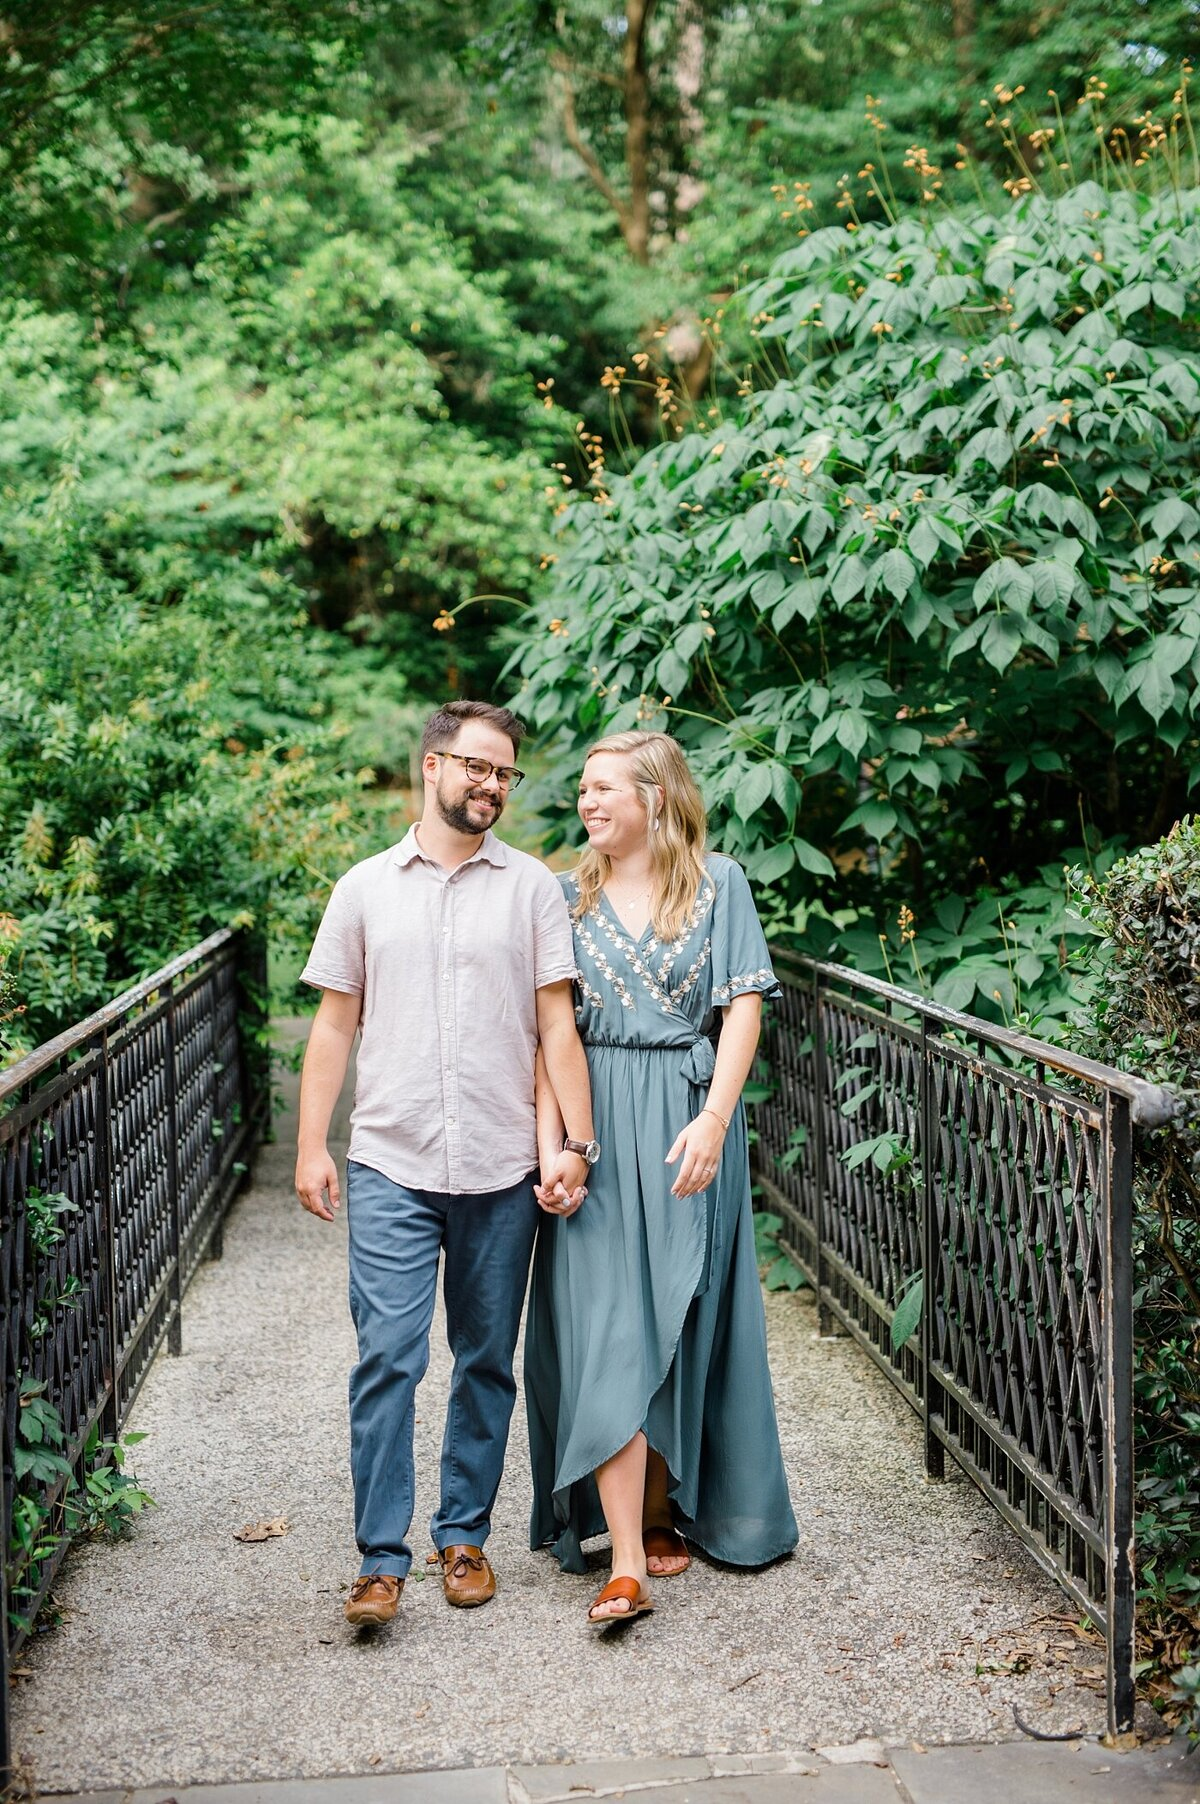 cator-woolford-gardens-engagement-wedding-photographer-laura-barnes-photo-shackelford-29